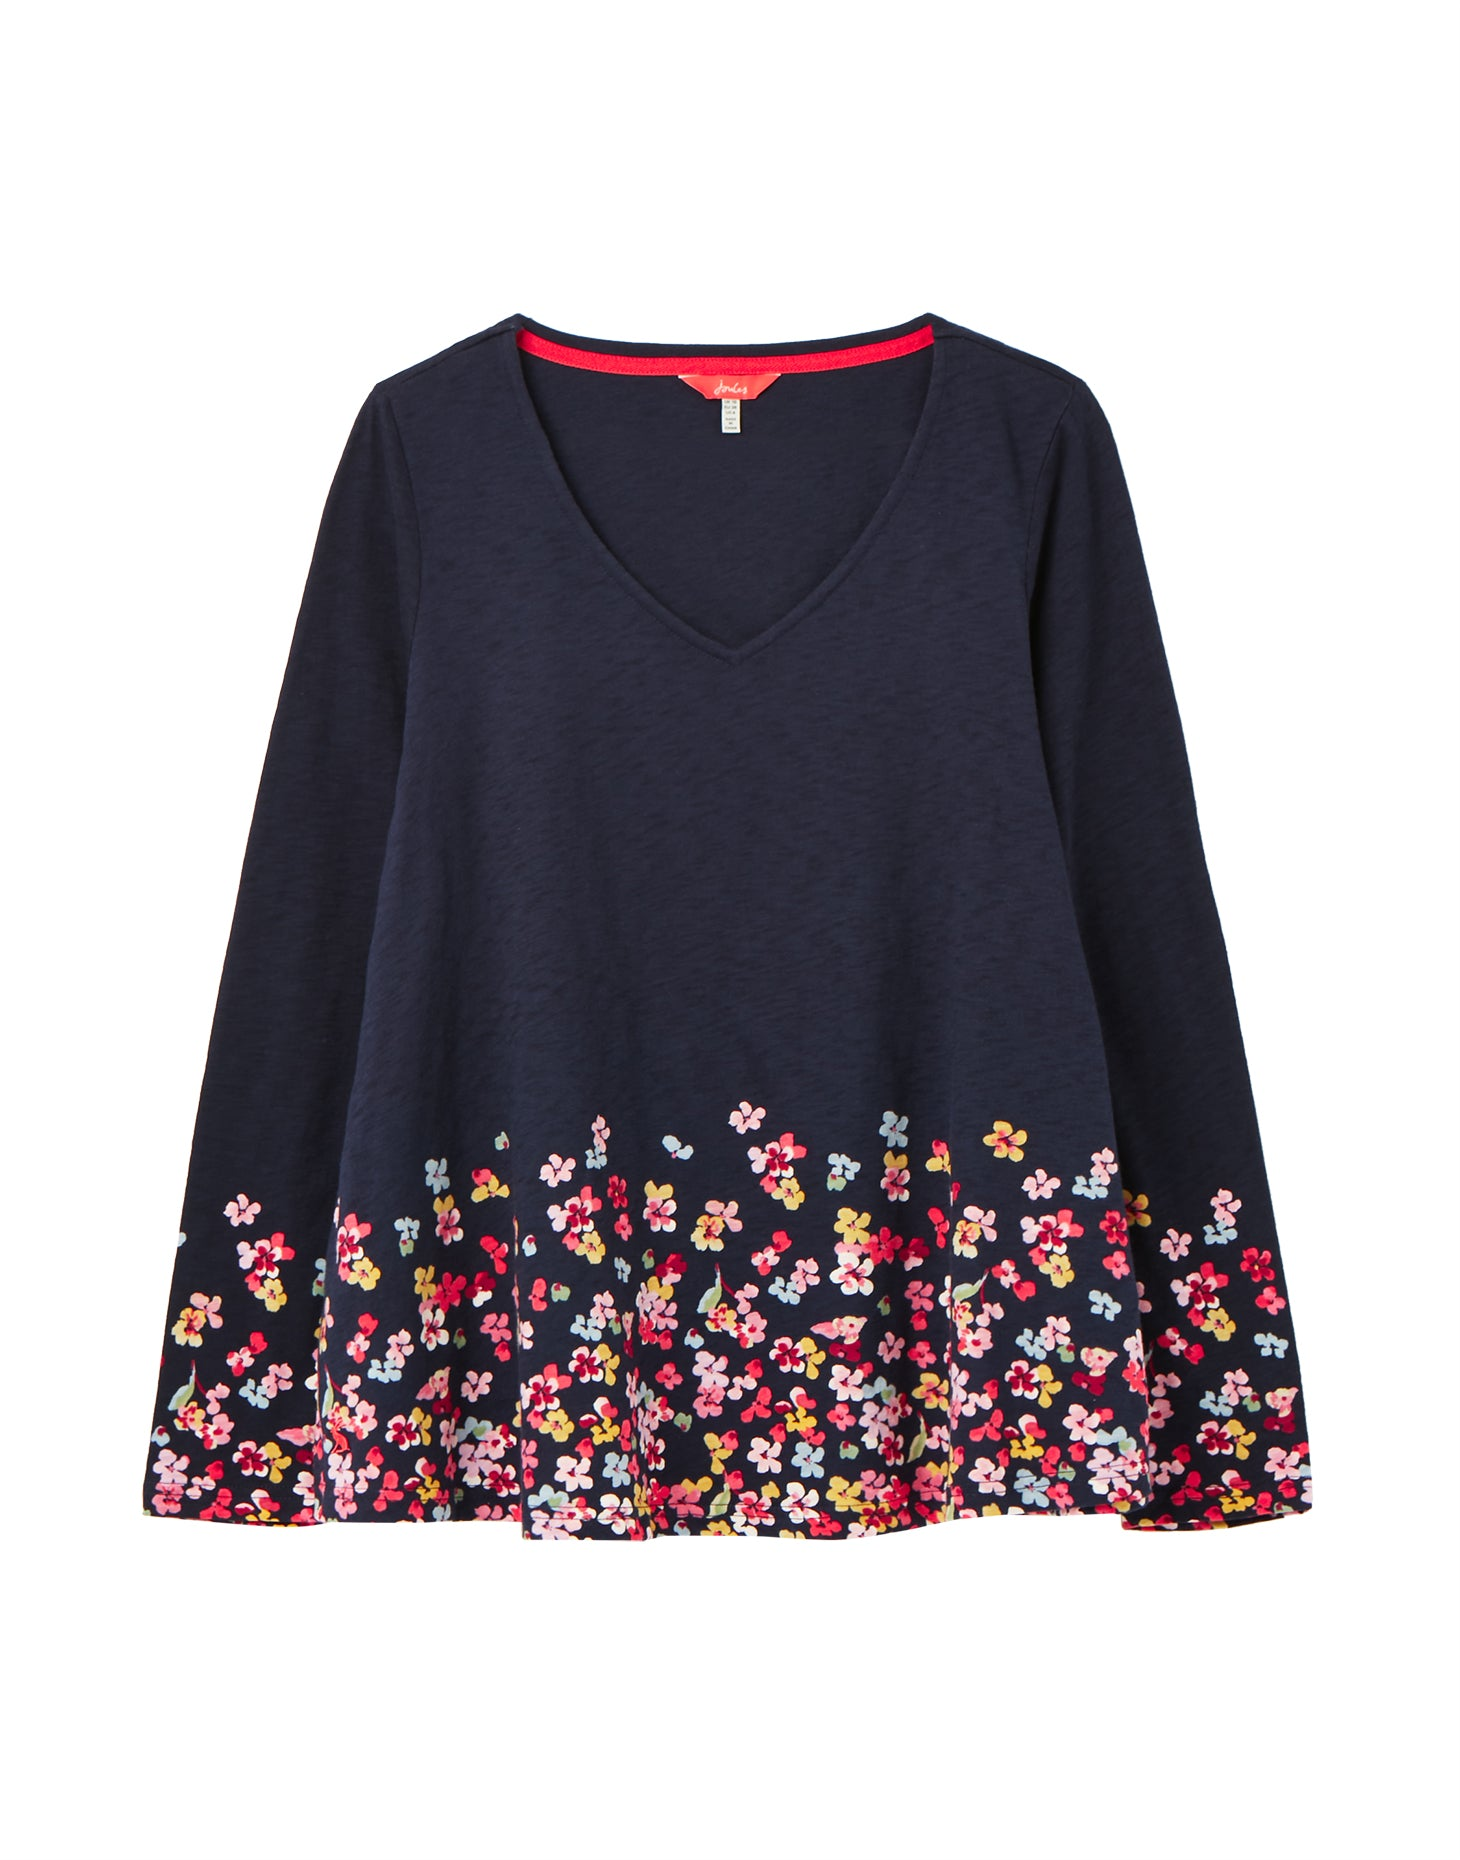 Joules Harbour Lightweight Swing V-Neck Jersey Top for Ladies in Navy Floral